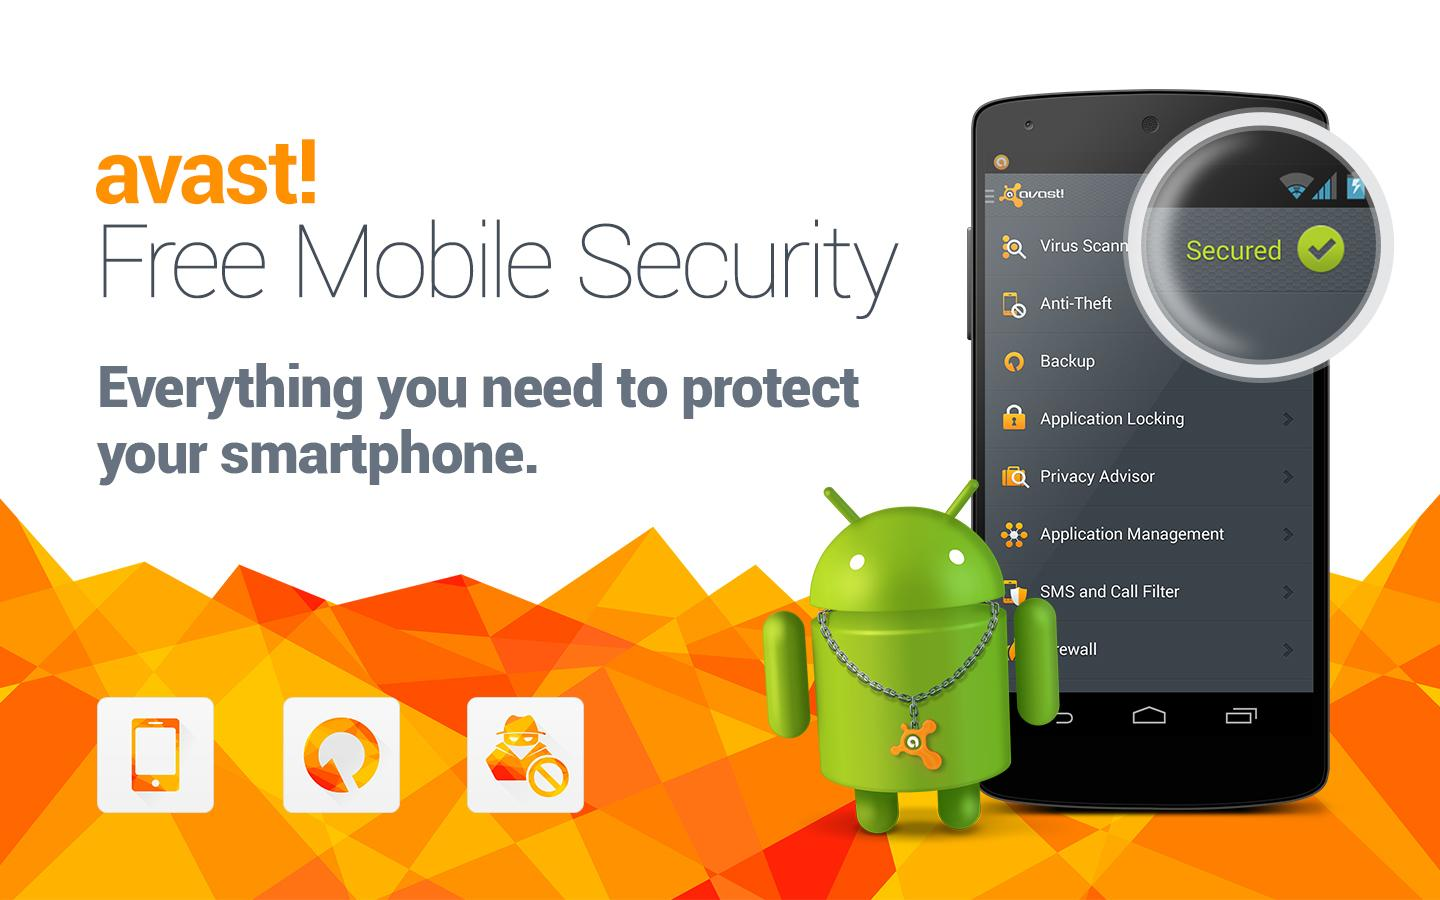 ����� ����� ������� ������� ������ avast Mobile Security